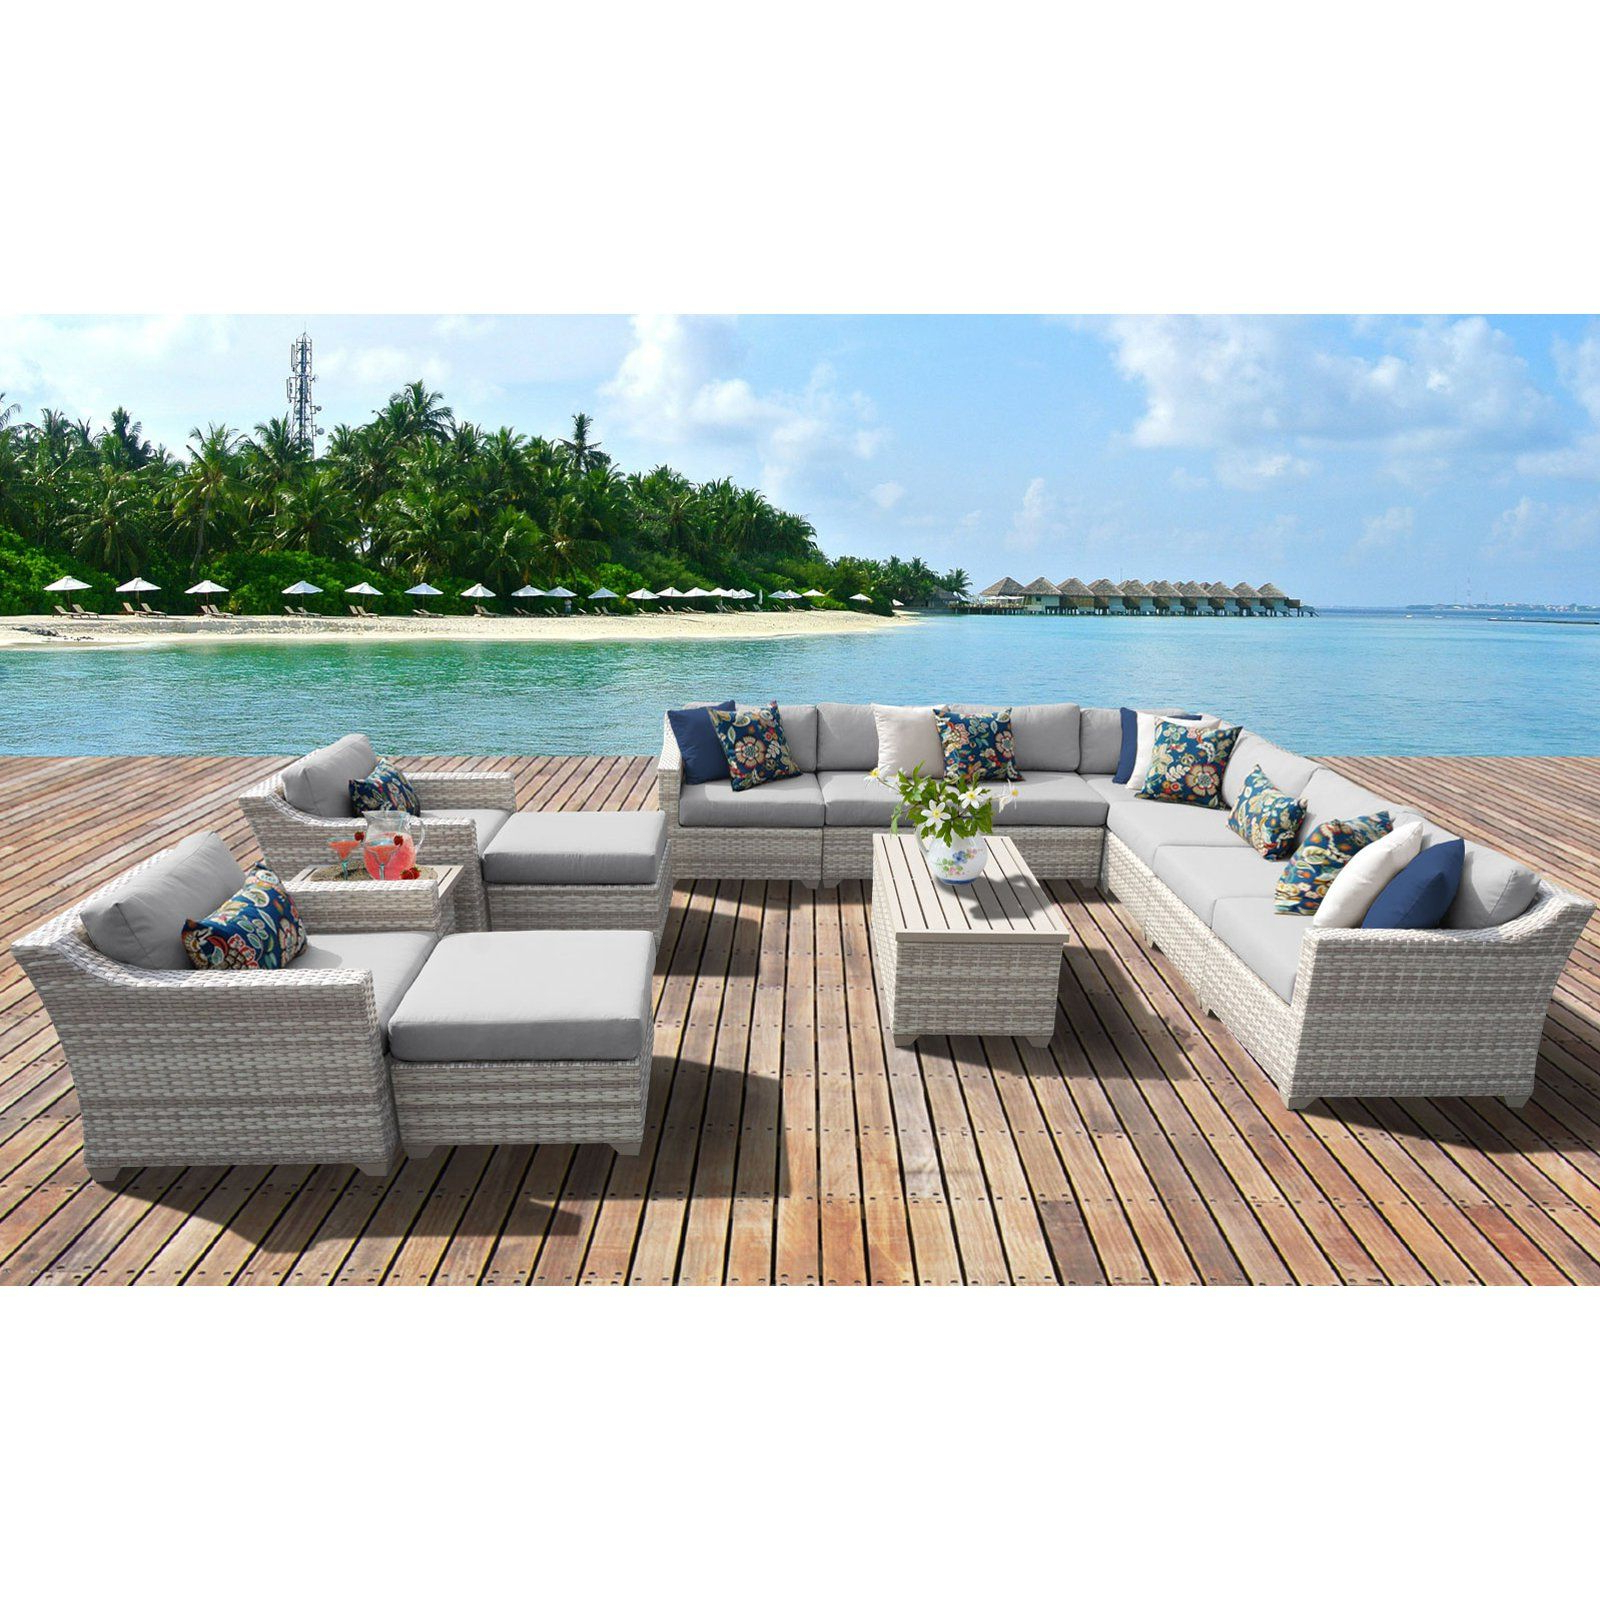 Outdoor 13 Piece Wicker Patio Sets With Cushions For Widely Used Outdoor Tk Classics Fairmont All Weather Wicker 13 Piece (View 13 of 25)